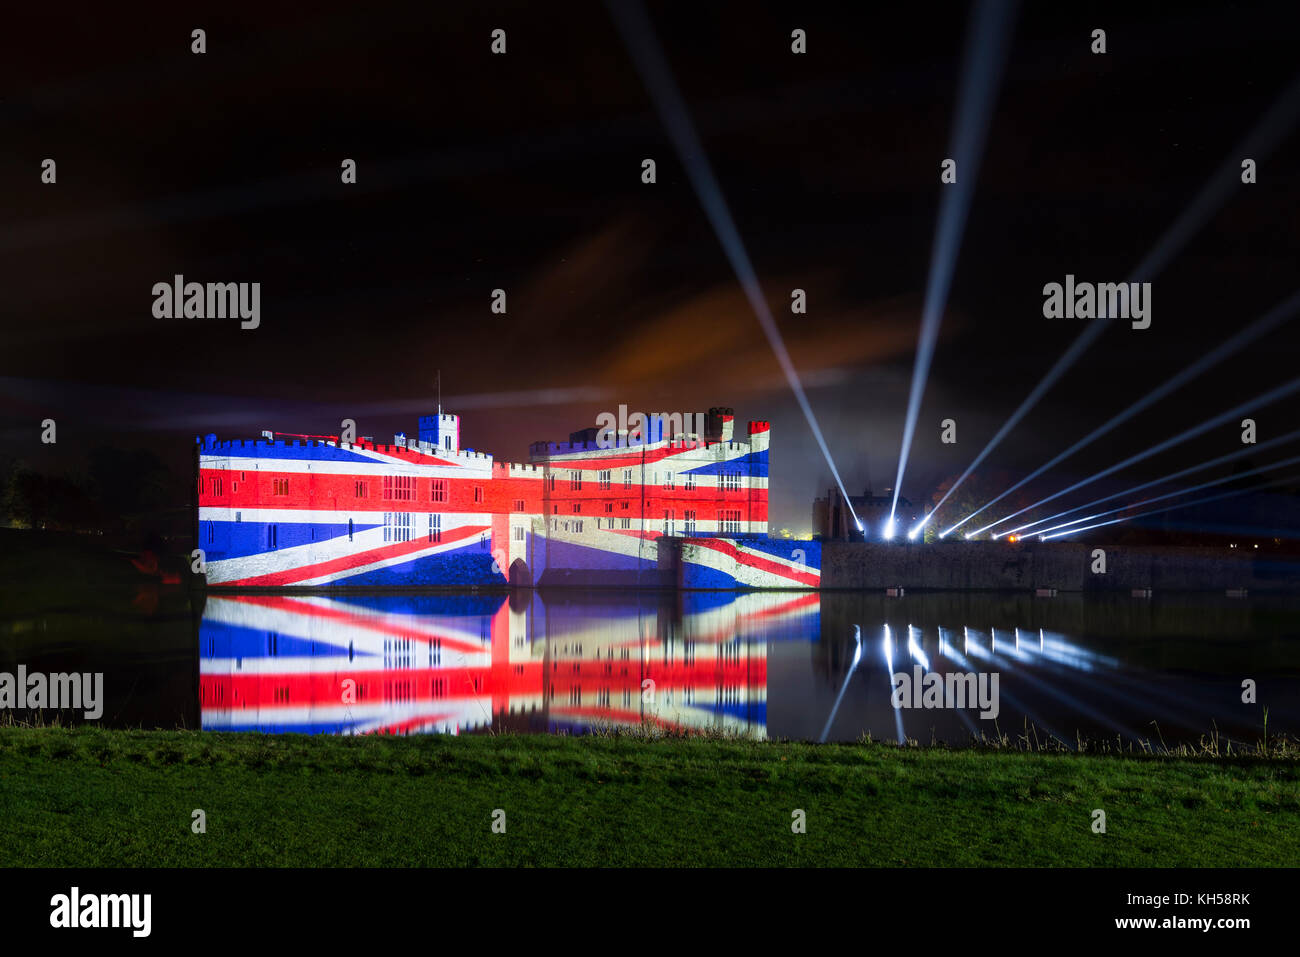 Firework display and light show at Leeds Castle, Kent - Stock Image